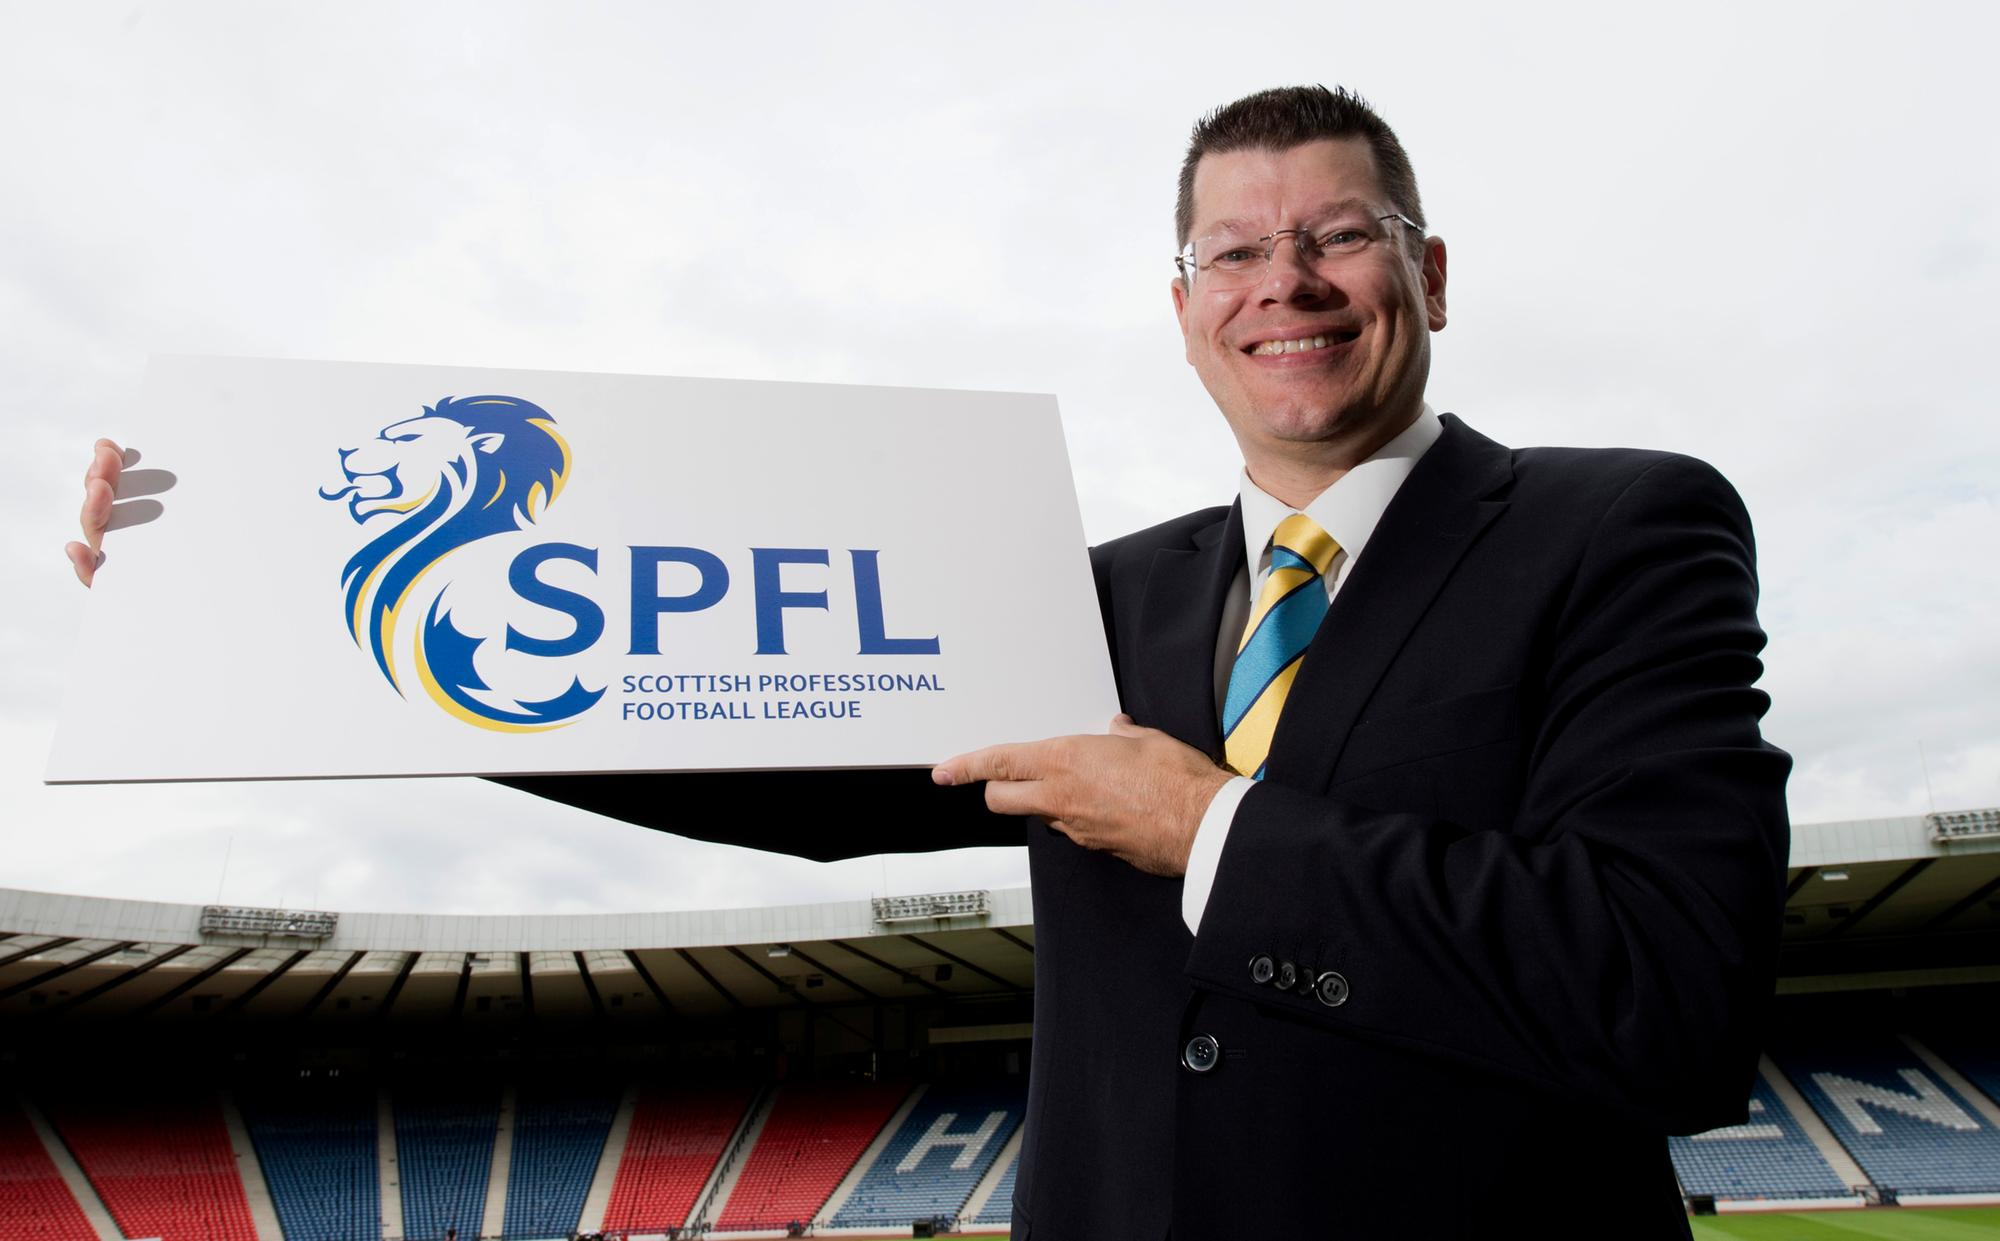 SPFL chief Neil Doncaster on Hearts/Partick Thistle challenge, 'imperative' Premiership starts in August & 19/20 season could not be finished